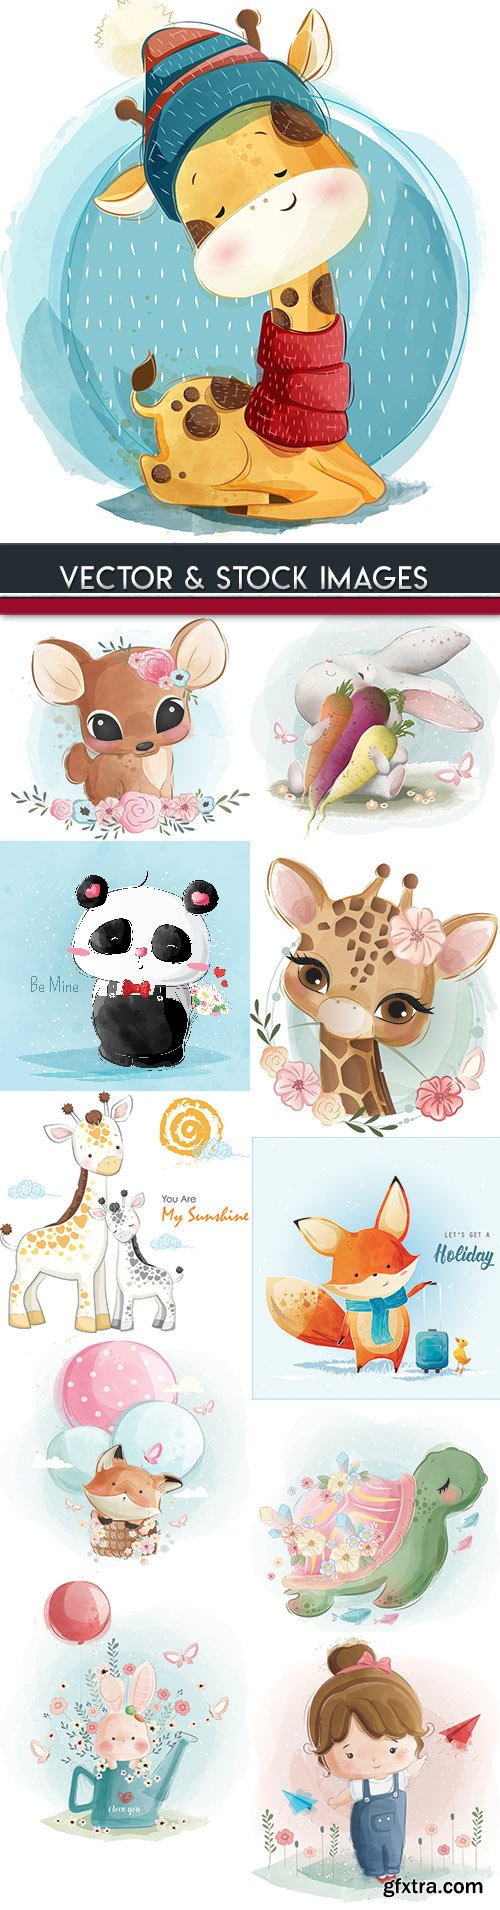 Watercolor drawings small animals and children